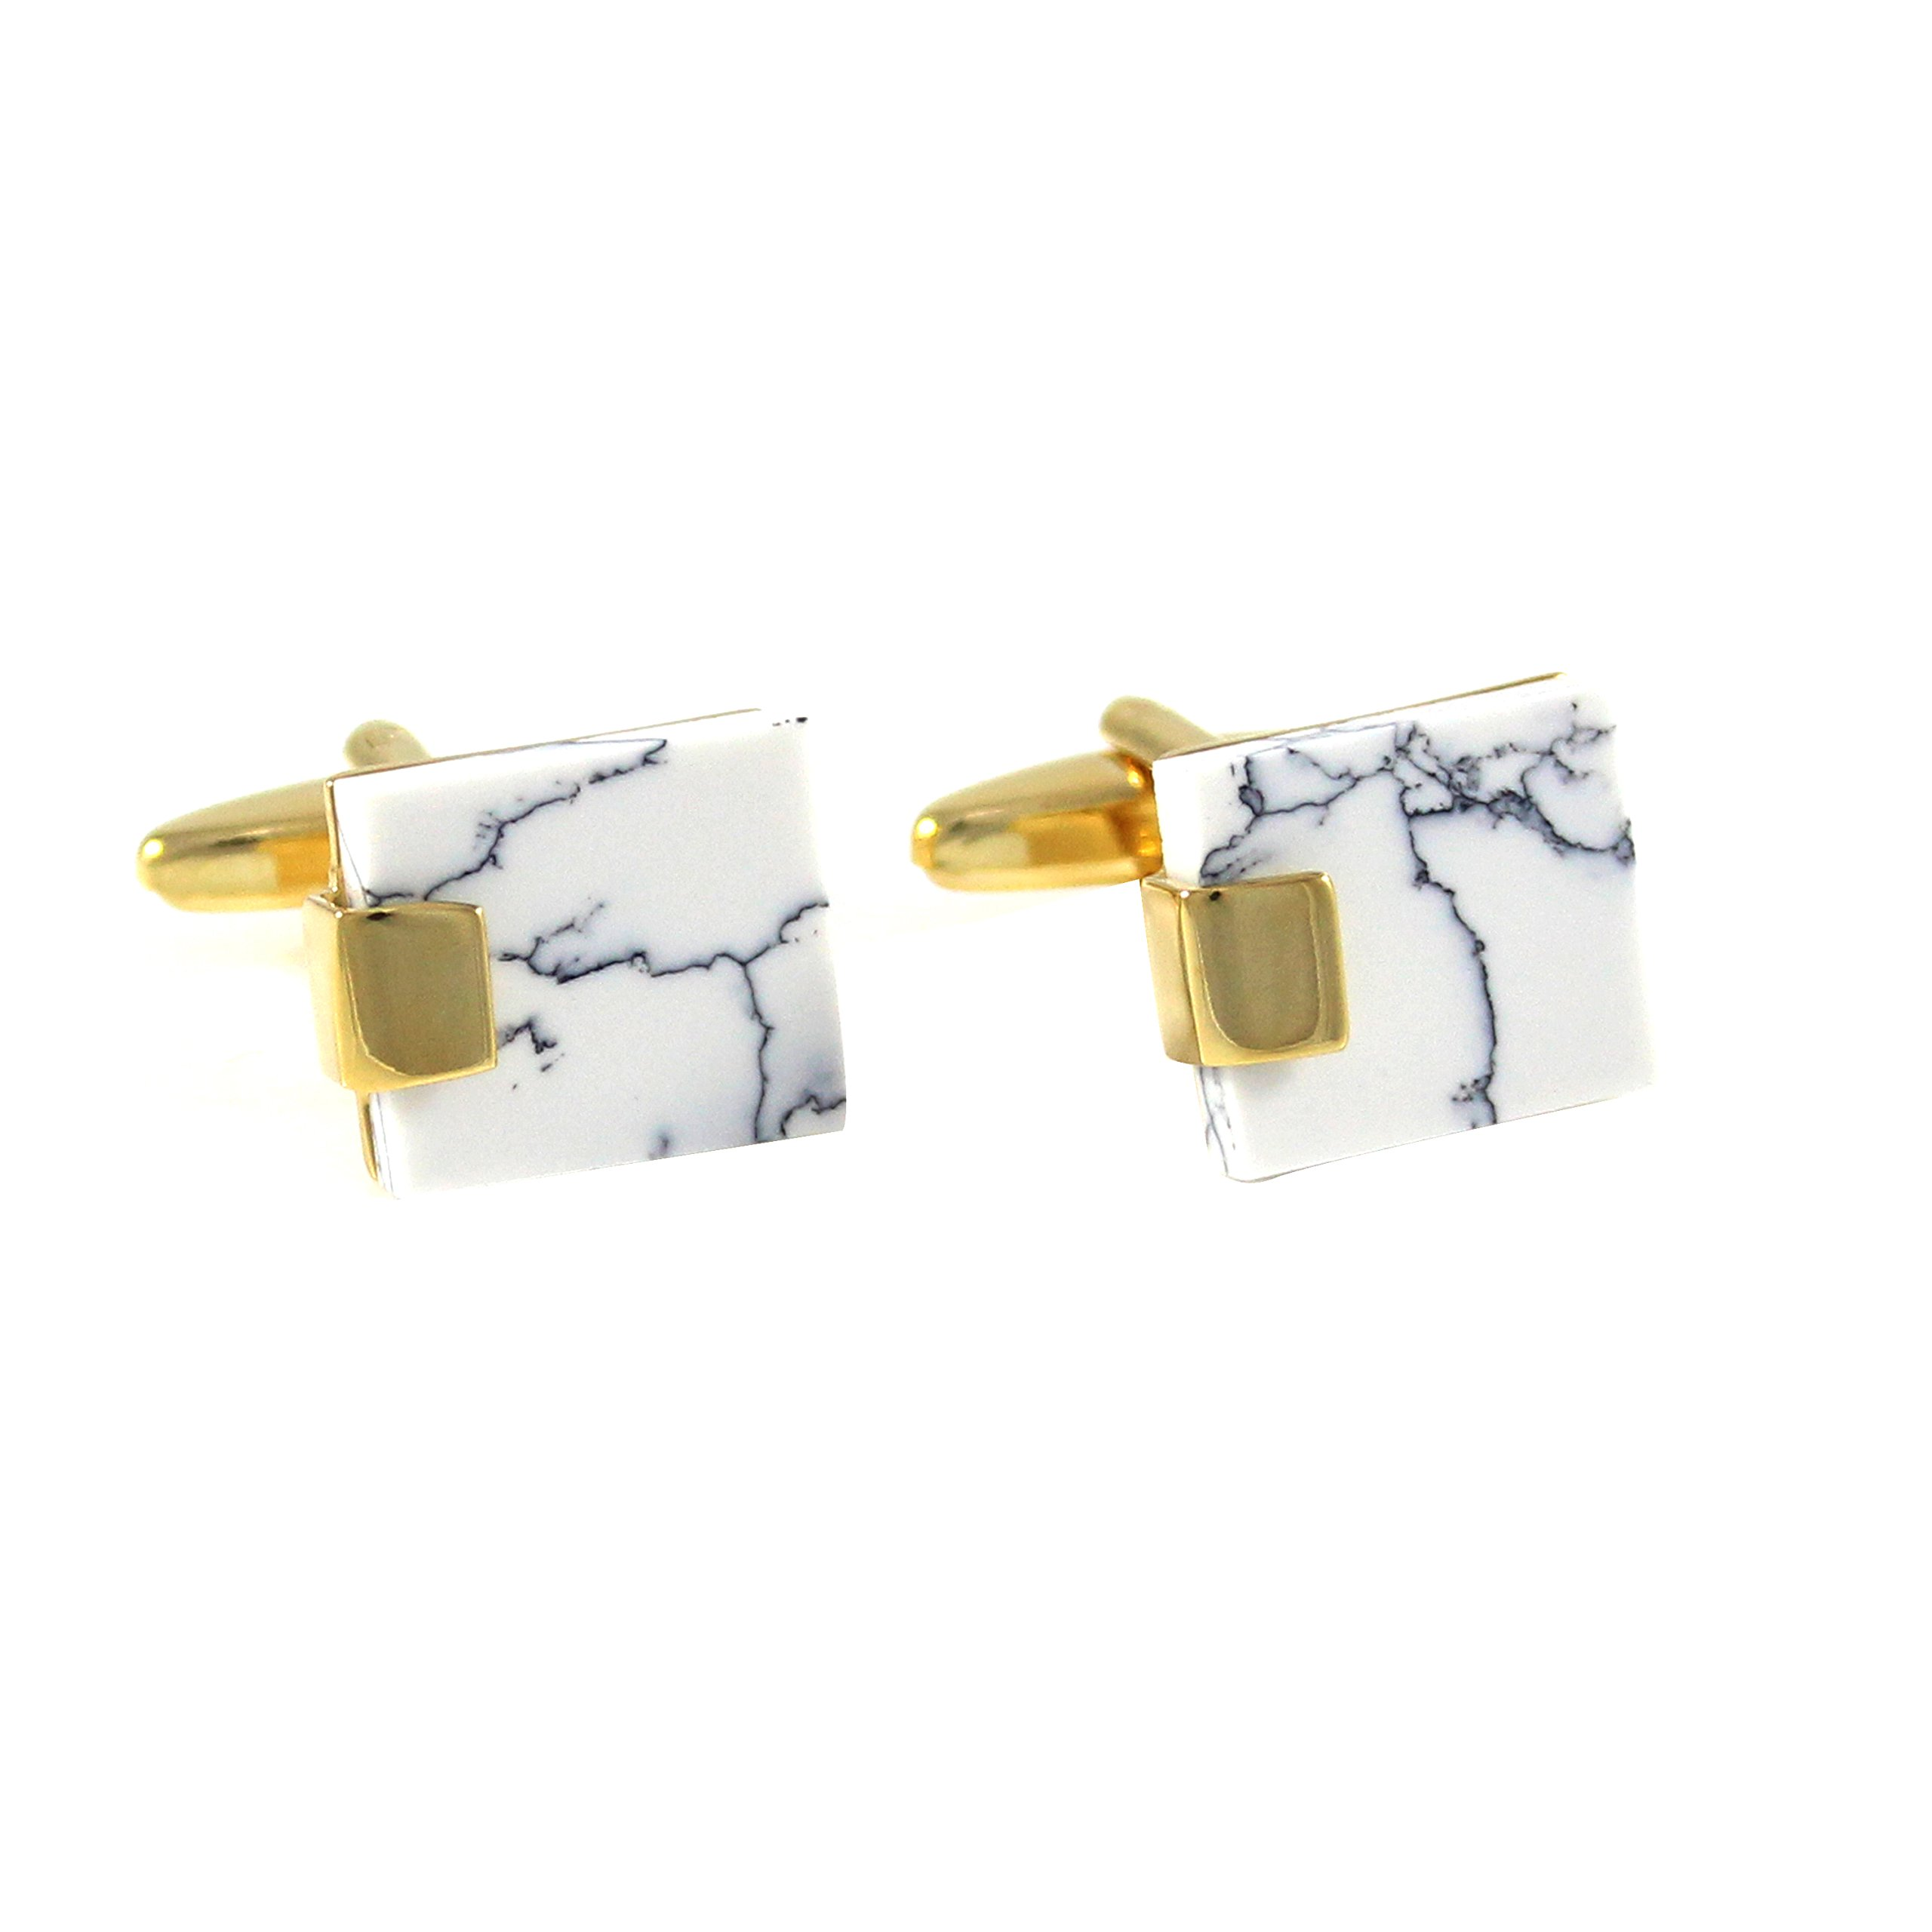 MENDEPOT Gold Plated Classic White Turquoise Cufflinks With Gift Box